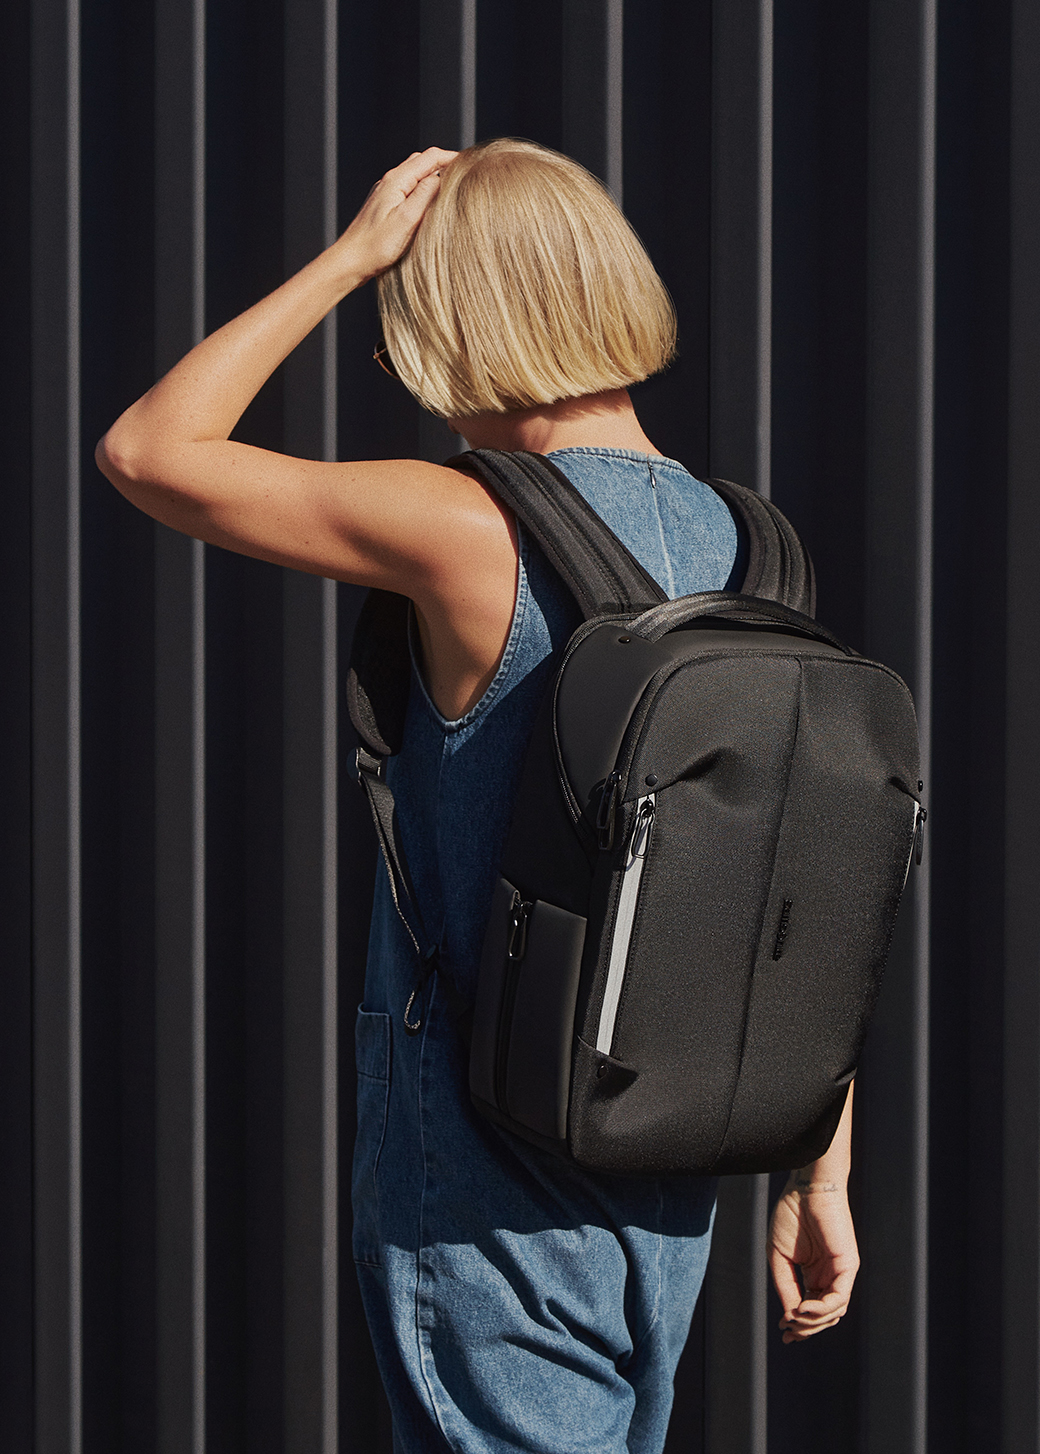 Konnect-i Backpack Model